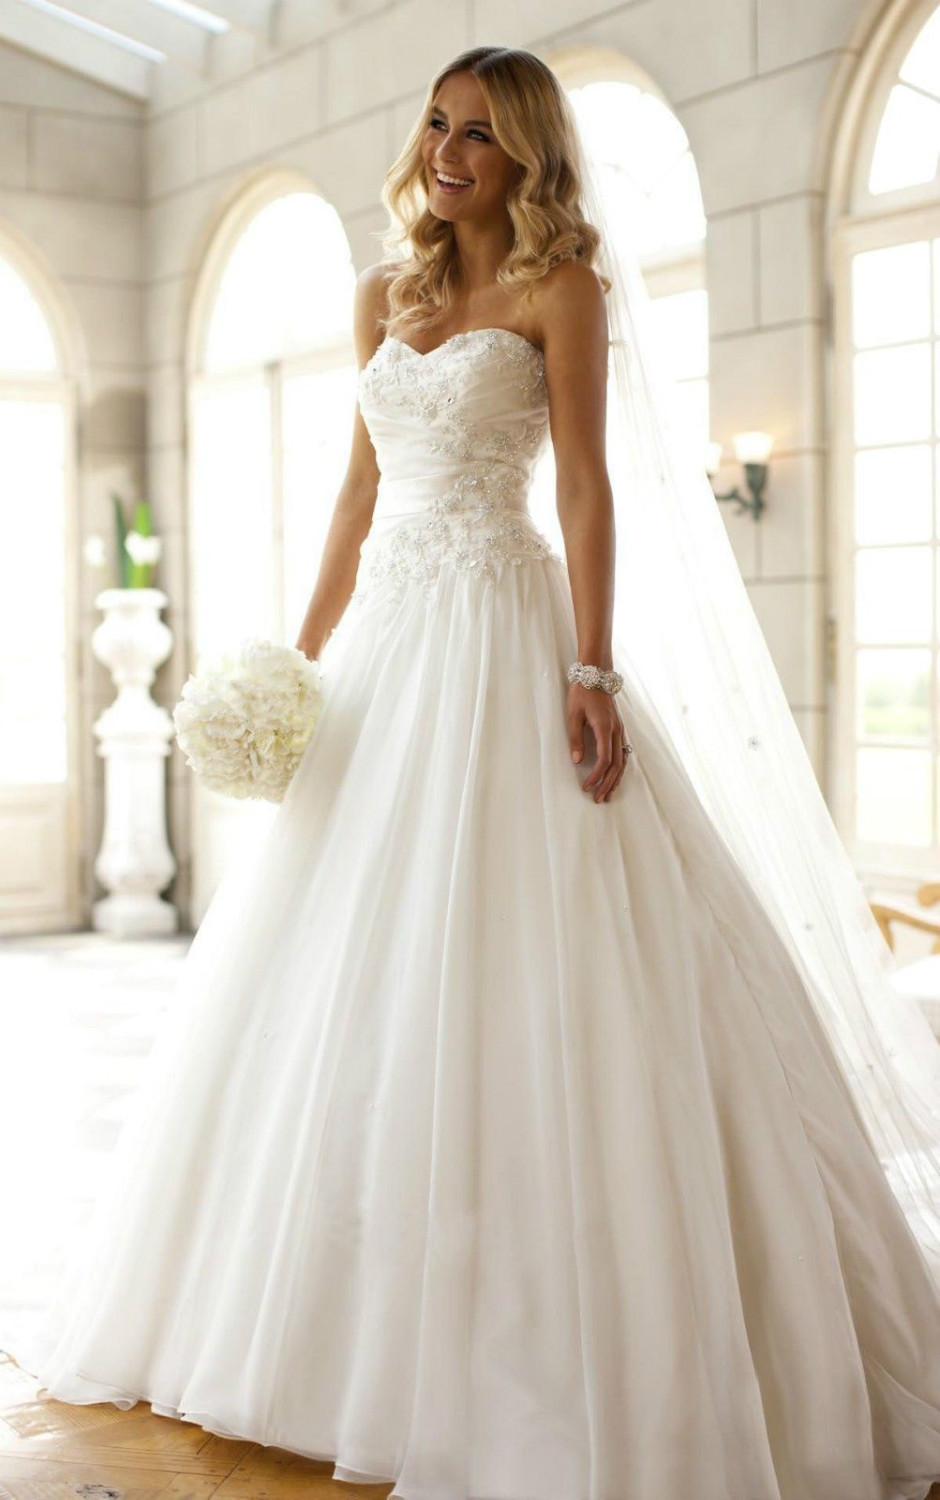 Wedding Dresses Lace Linen Dress White And Red Beach Victorian A ...